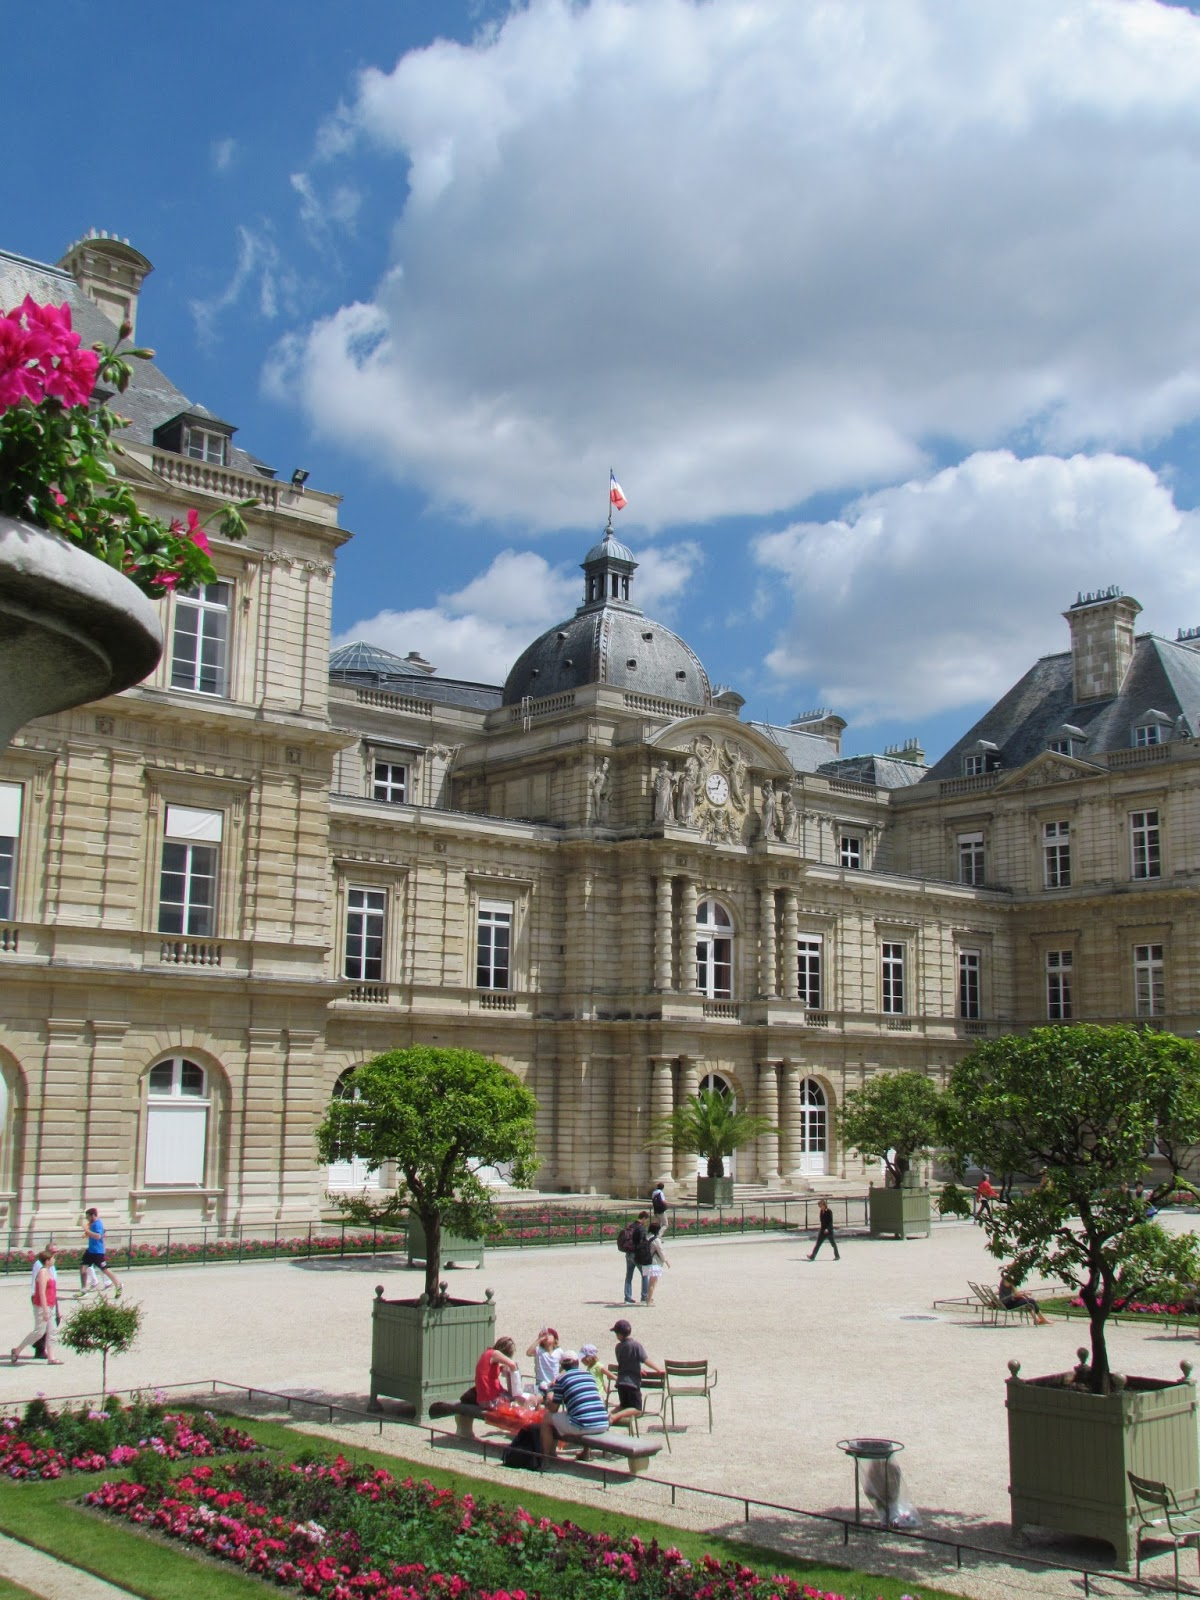 Images of the jardin du luxembourg paris in july 2013 for Jardin du luxembourg